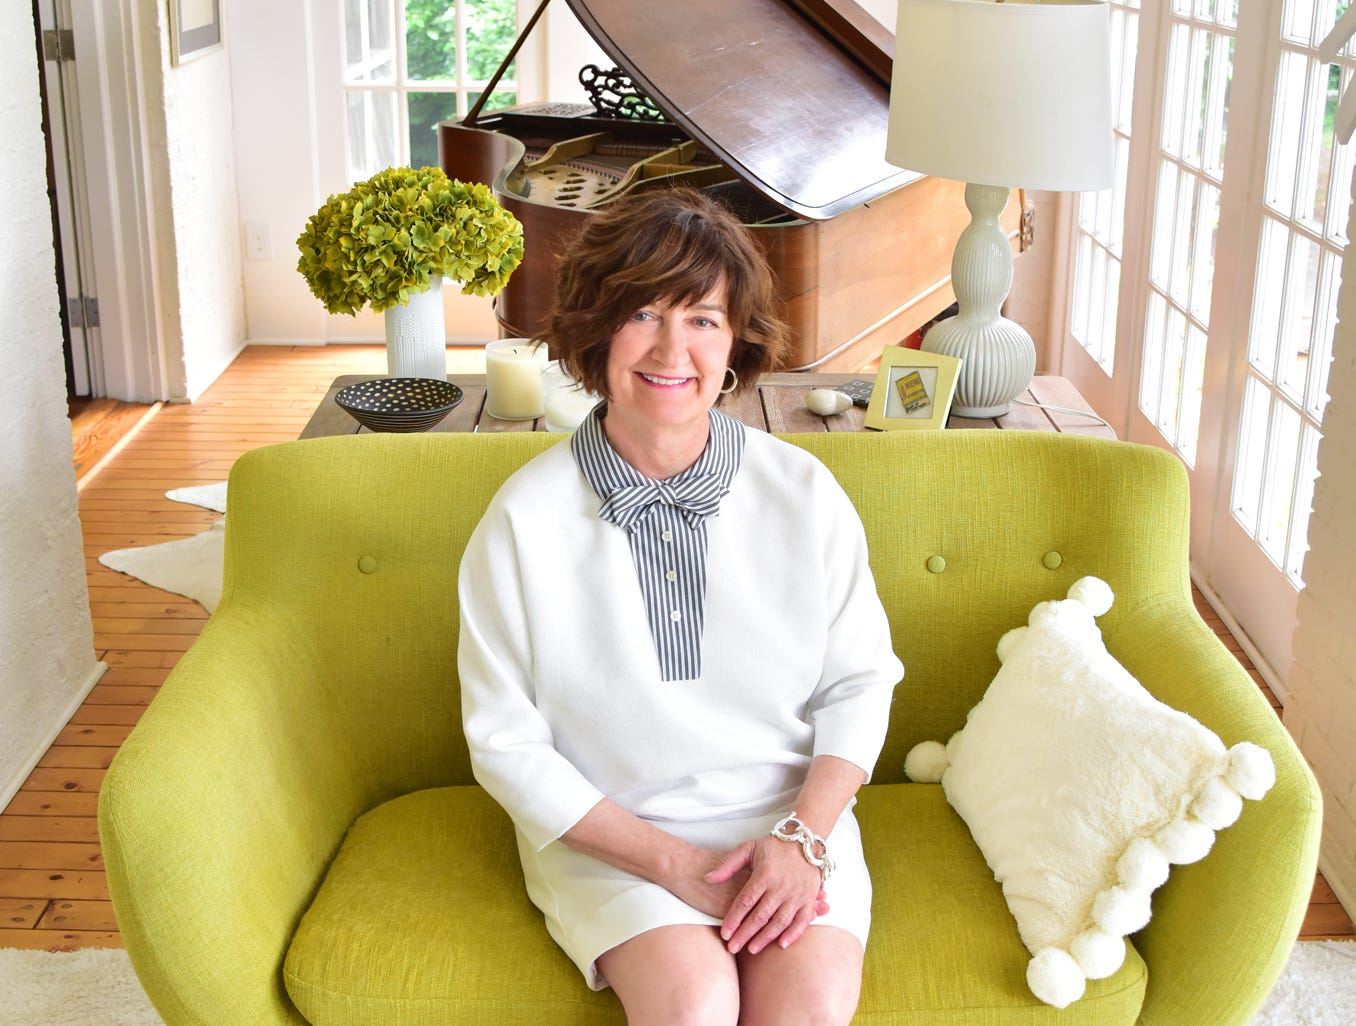 Kathy Harris was the 15 Minutes With feature for the August issue of TALK.